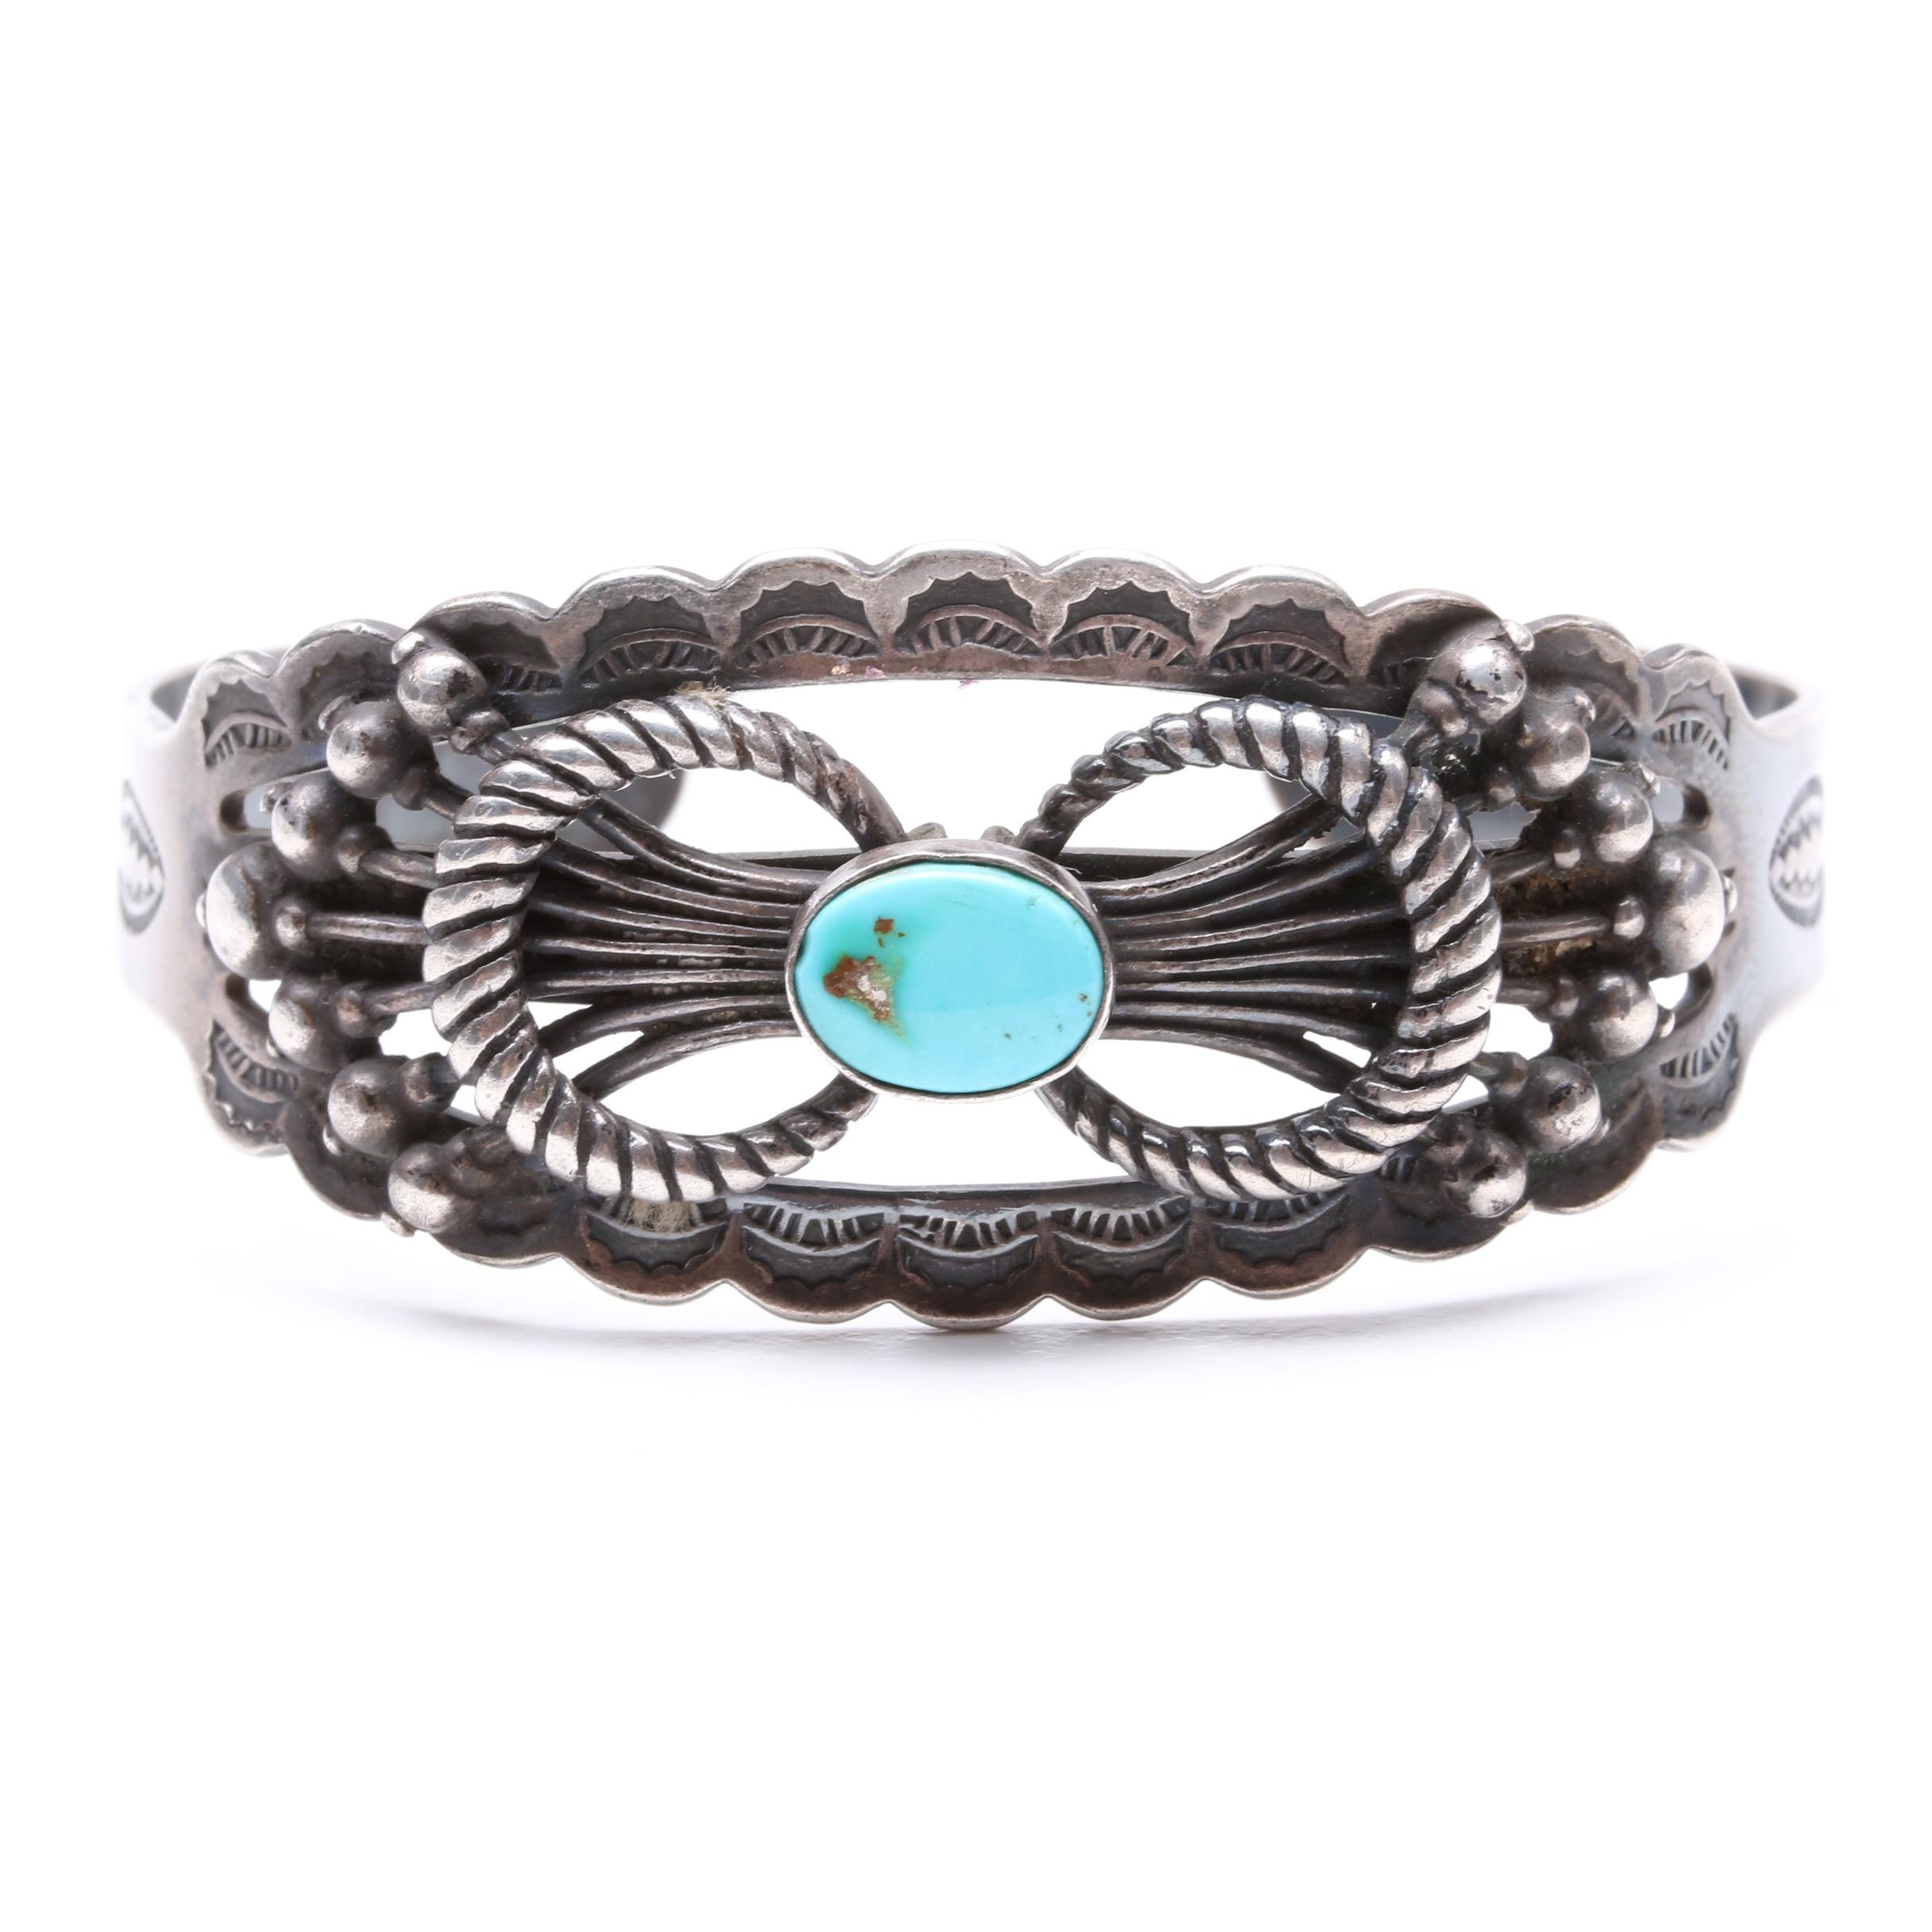 Southwest Style Sterling Silver Turquoise Cuff Bracelet